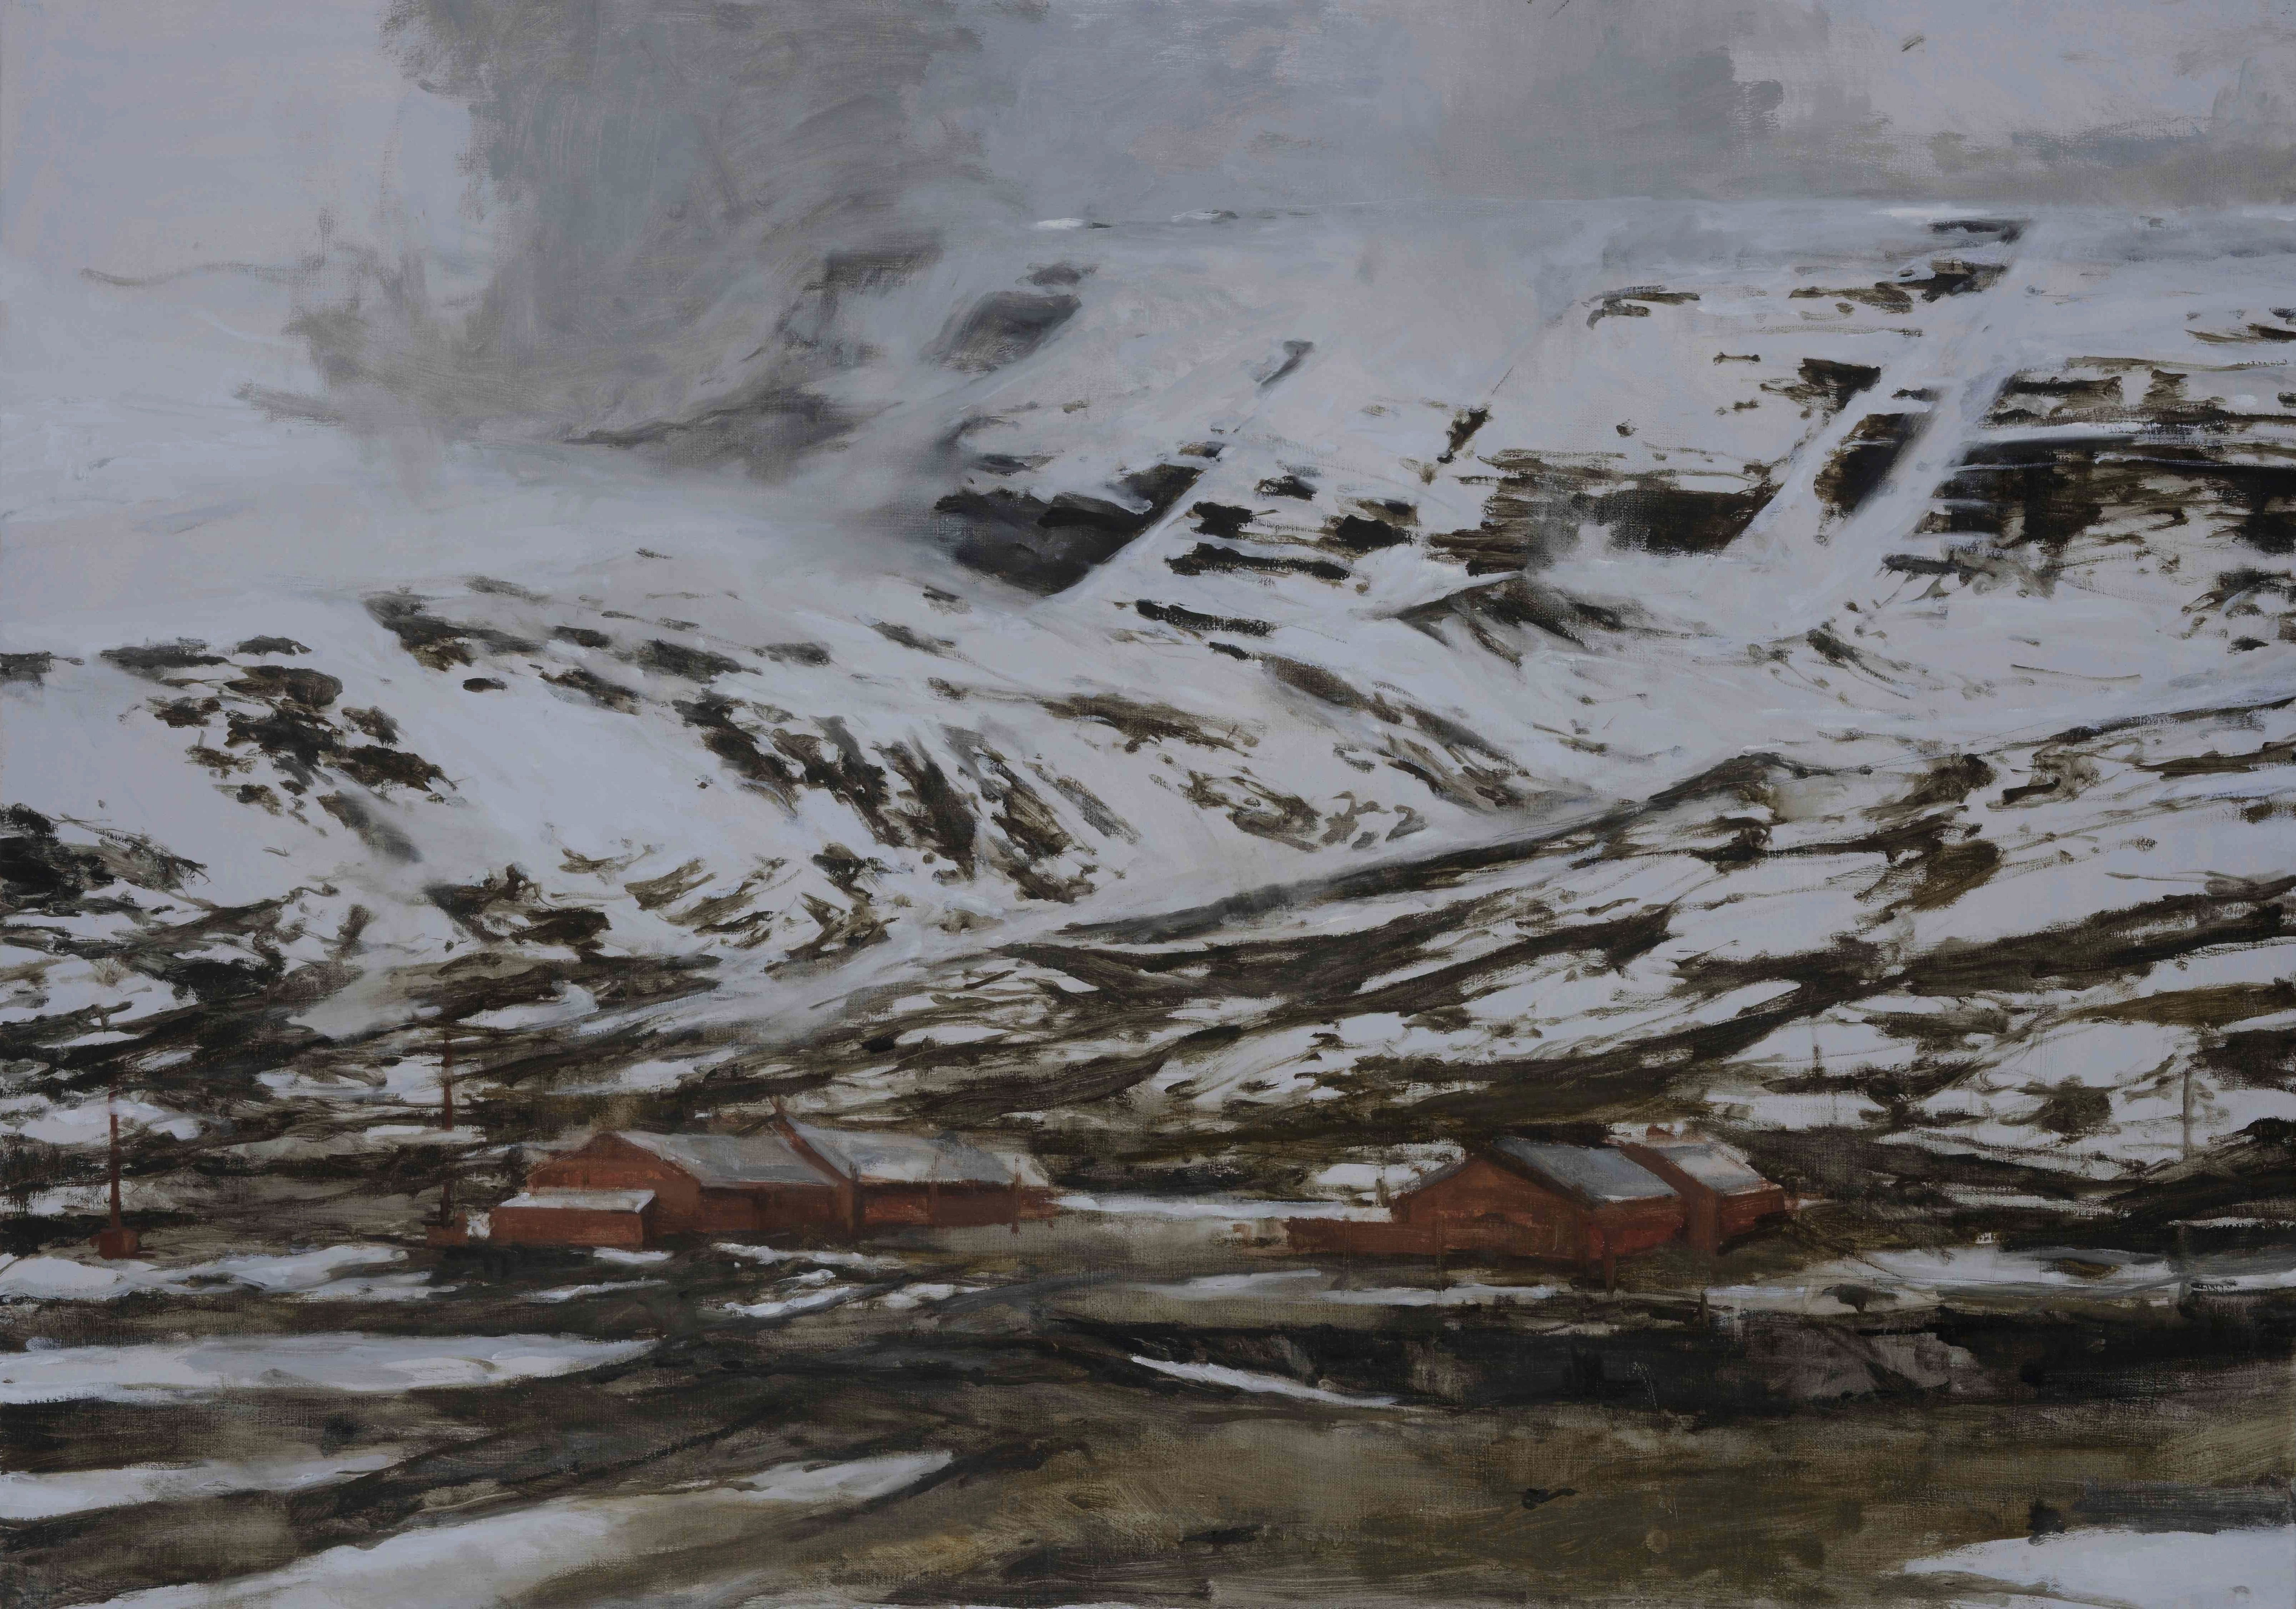 Myrdal, Norway series,Calo  Carratalá,Contemporary painting, detail 4